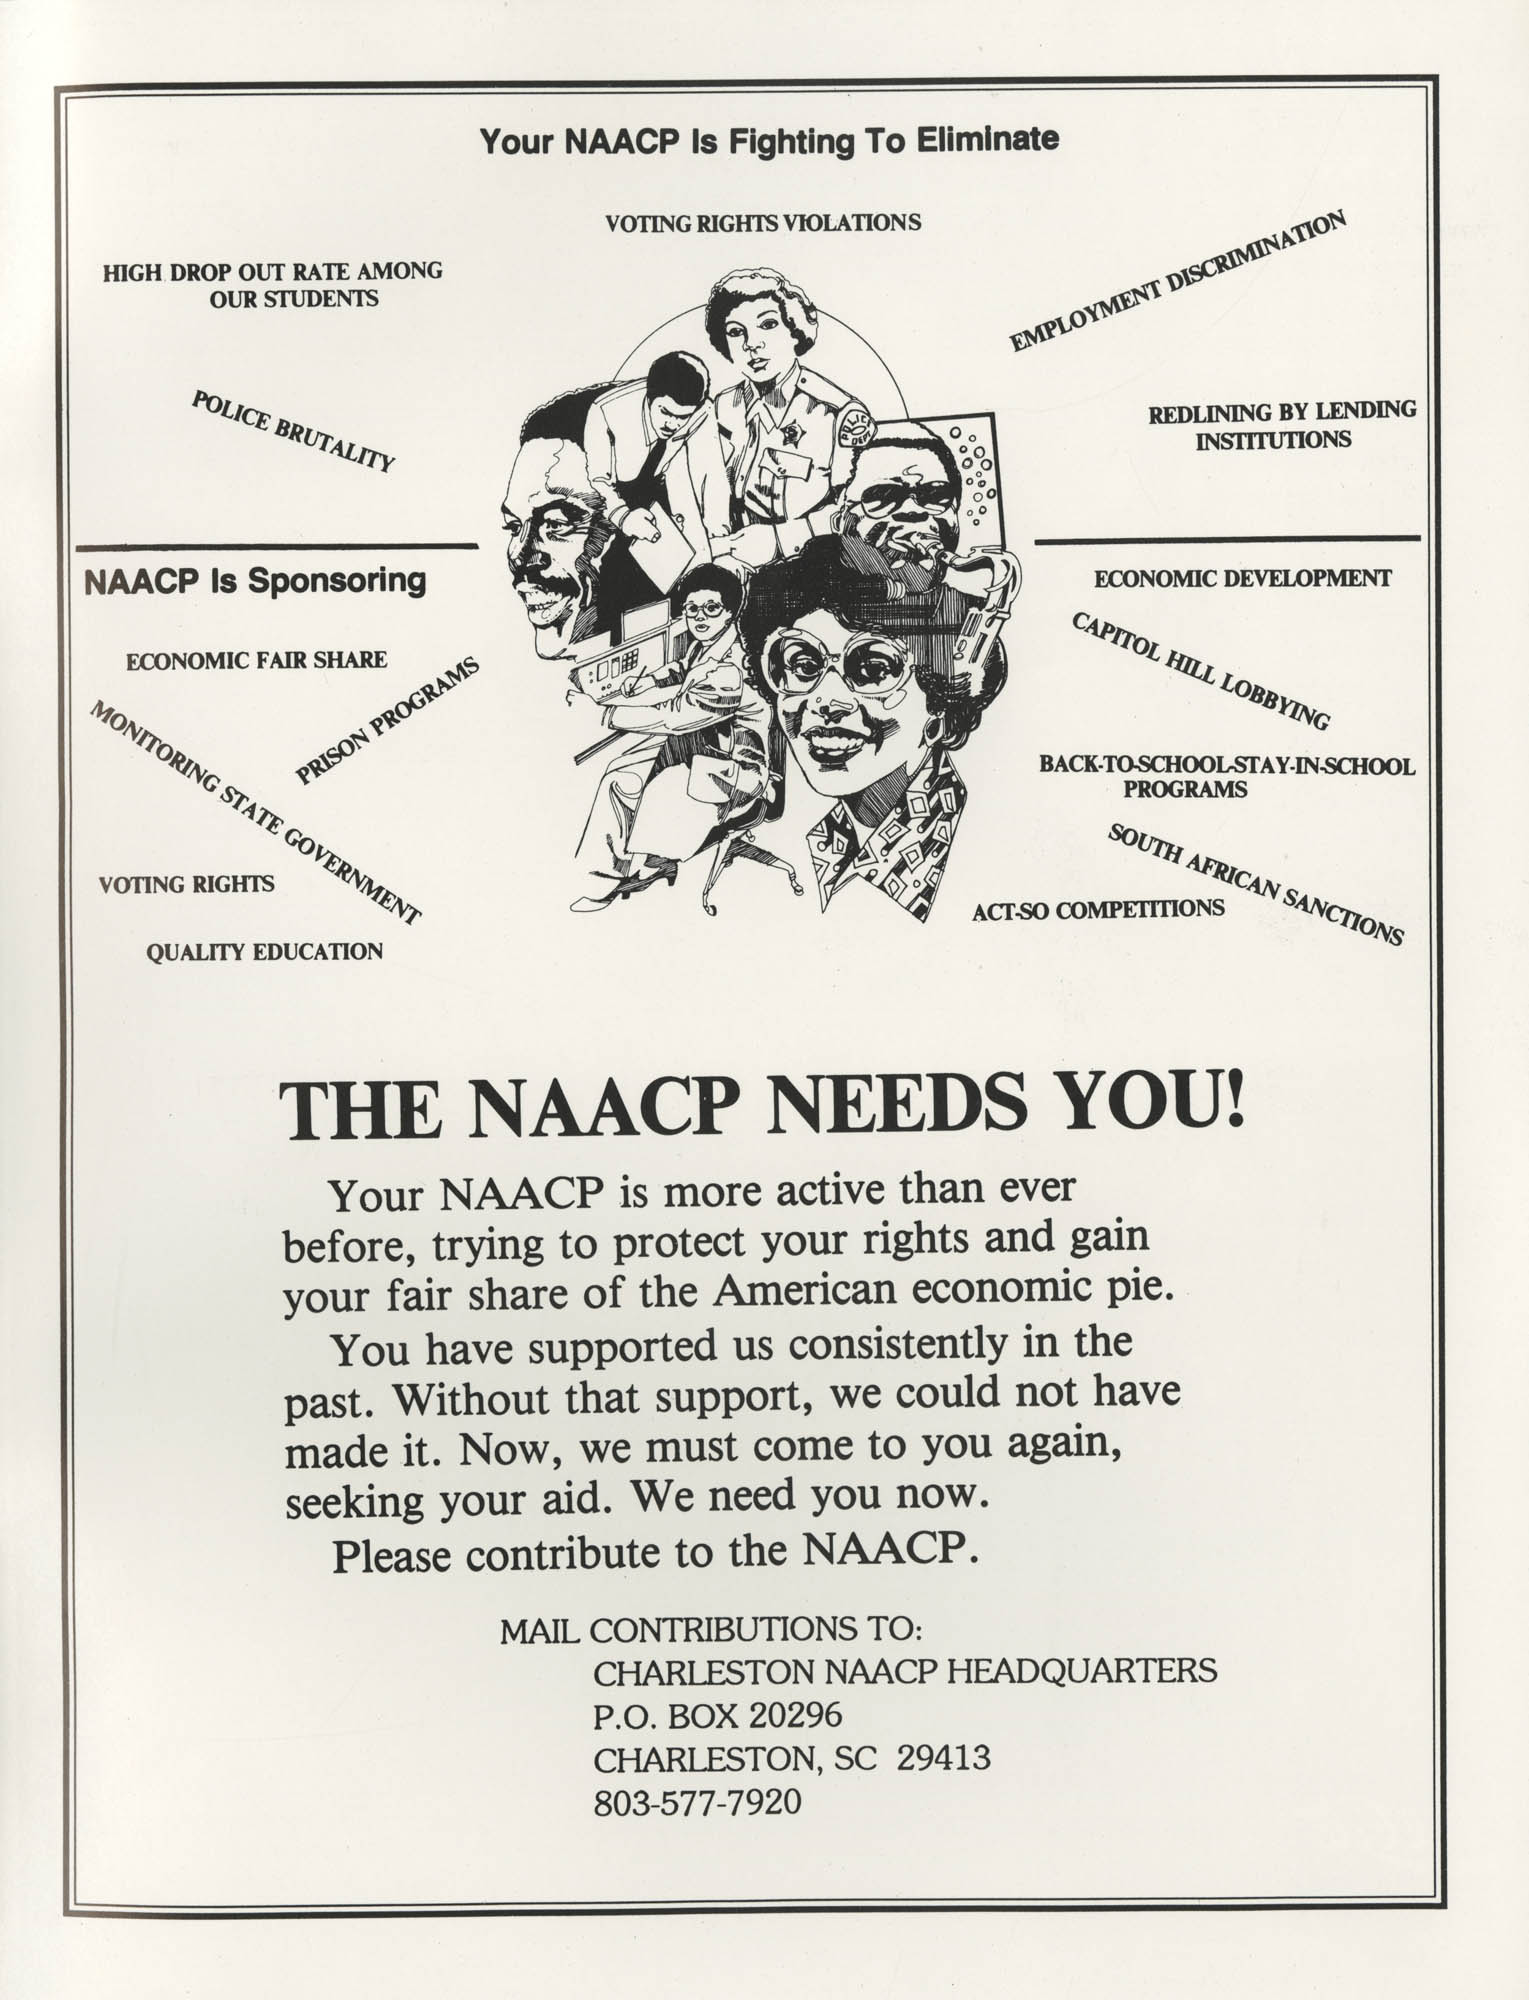 1991 Freedom Fund Magazine, Charleston Branch of the NAACP, Page 57